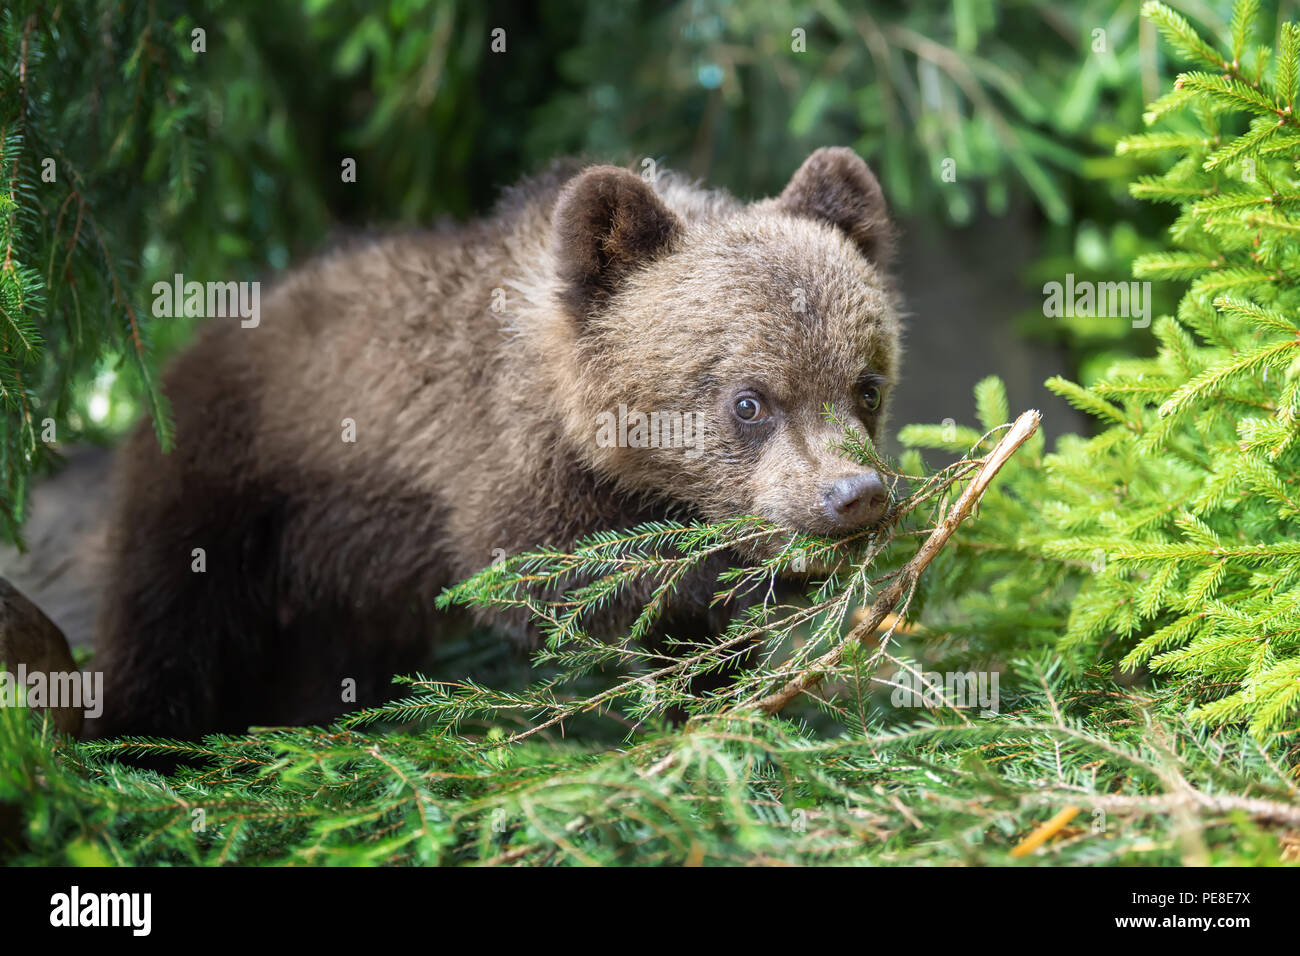 Young brown bear cub in the forest. Animal in the nature habitat - Stock Image